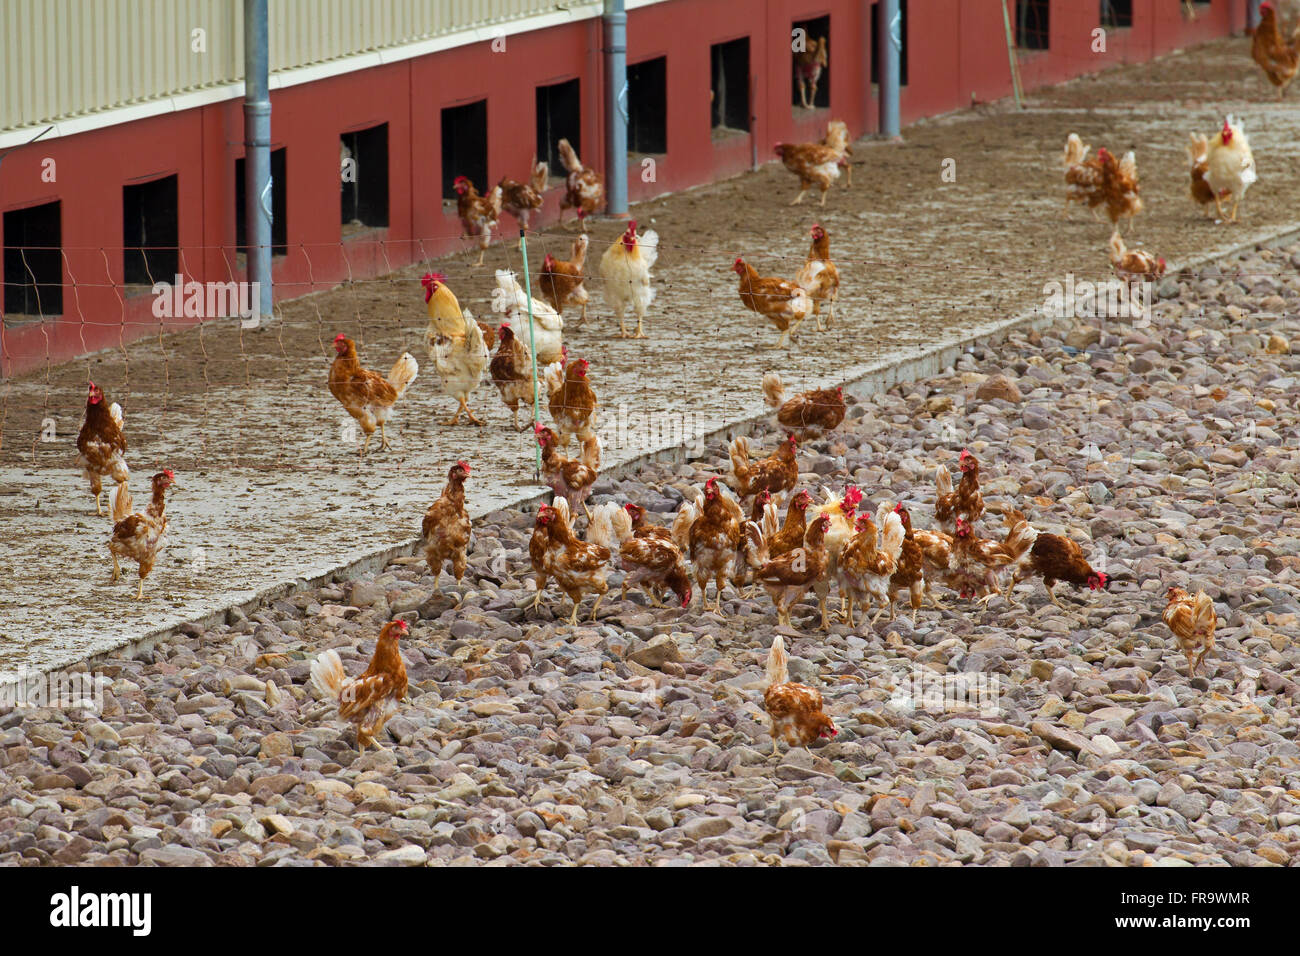 Domestic chickens (Gallus gallus domesticus), commercial free range hens roam freely outdoors - Stock Image